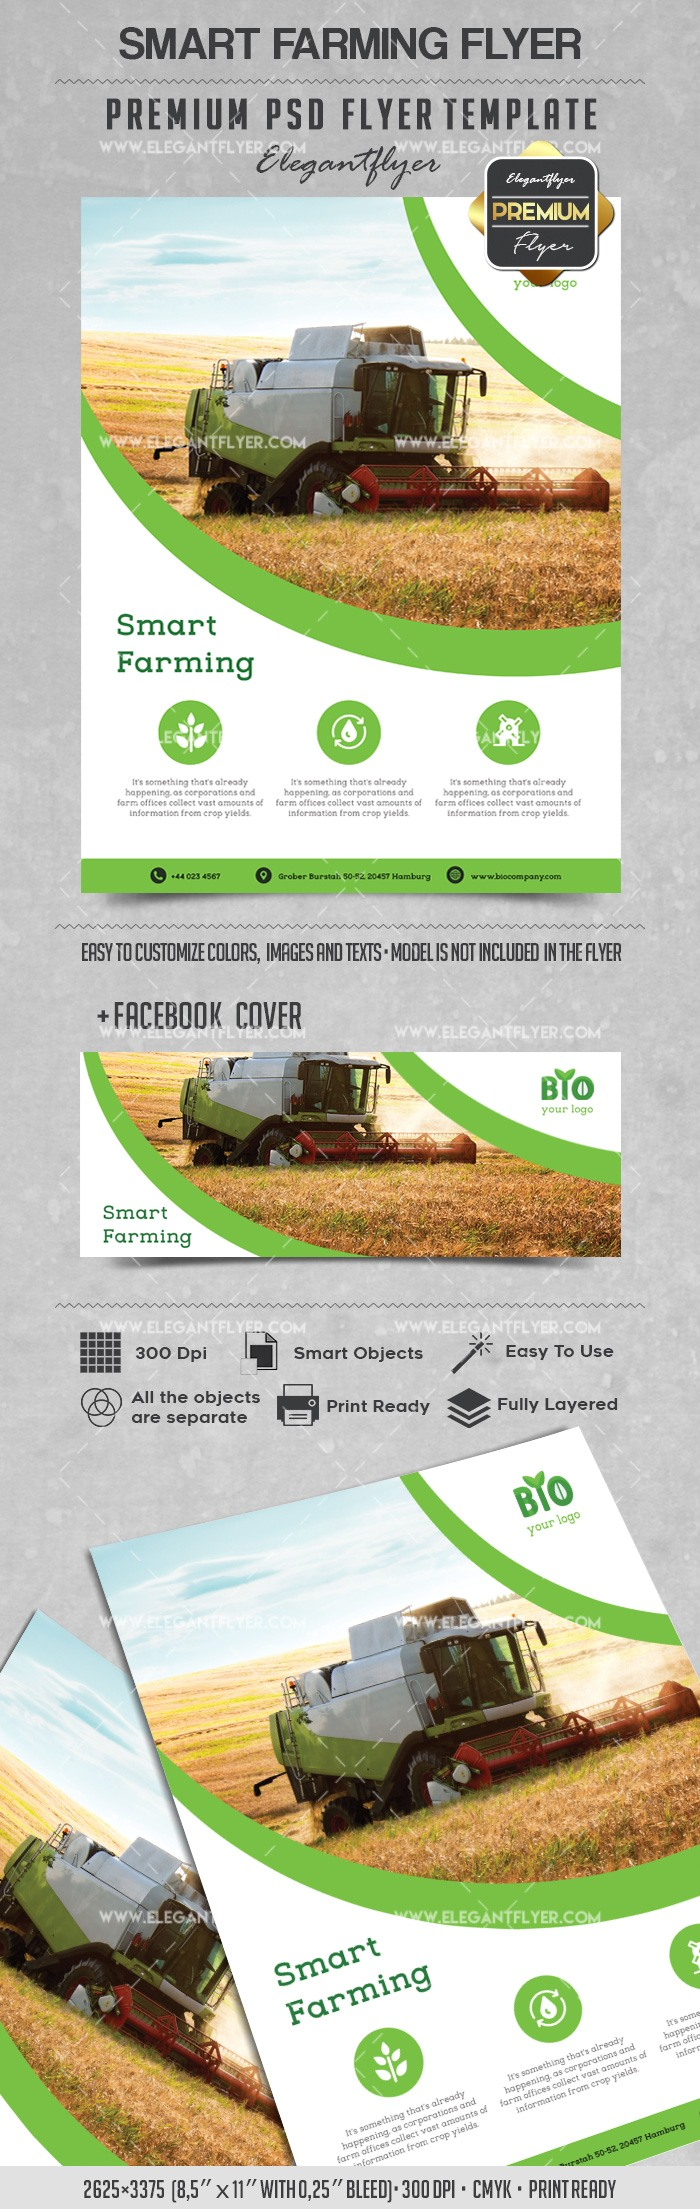 Flyer Template For Smart Farming